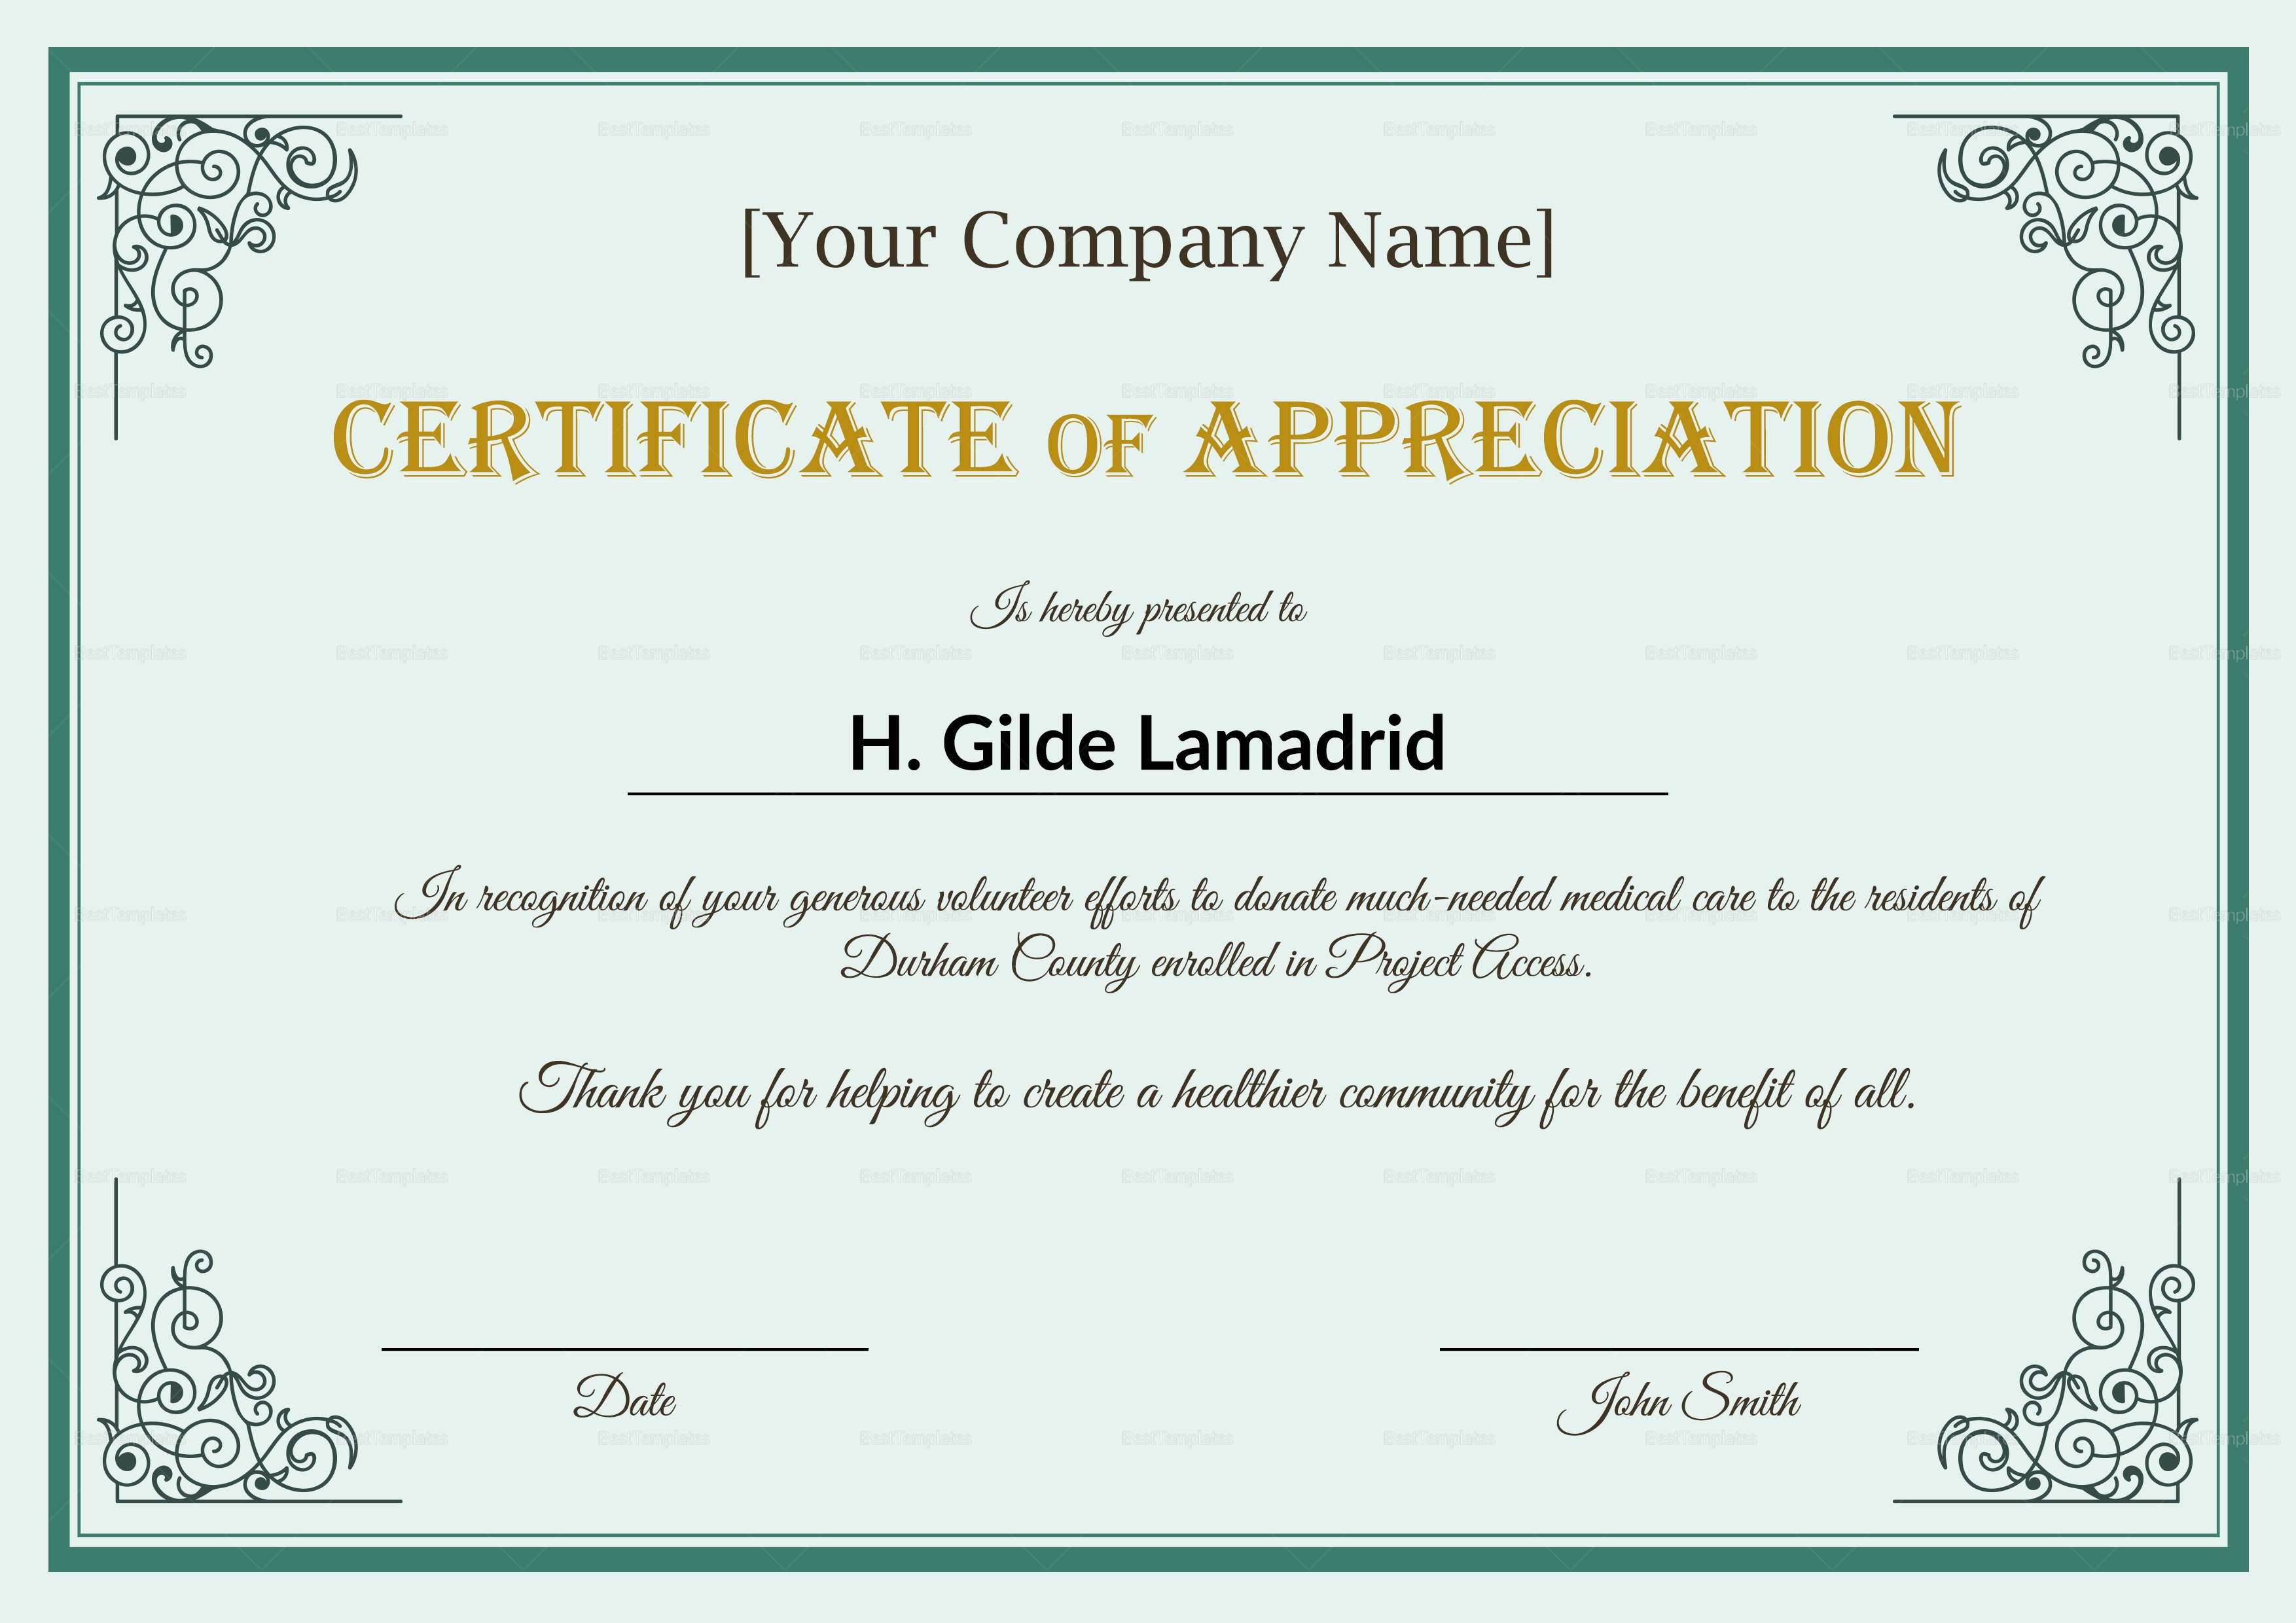 Company Employee Appreciation Certificate Design Template In Psd Word Intended For In Appreciation Certificate Templates